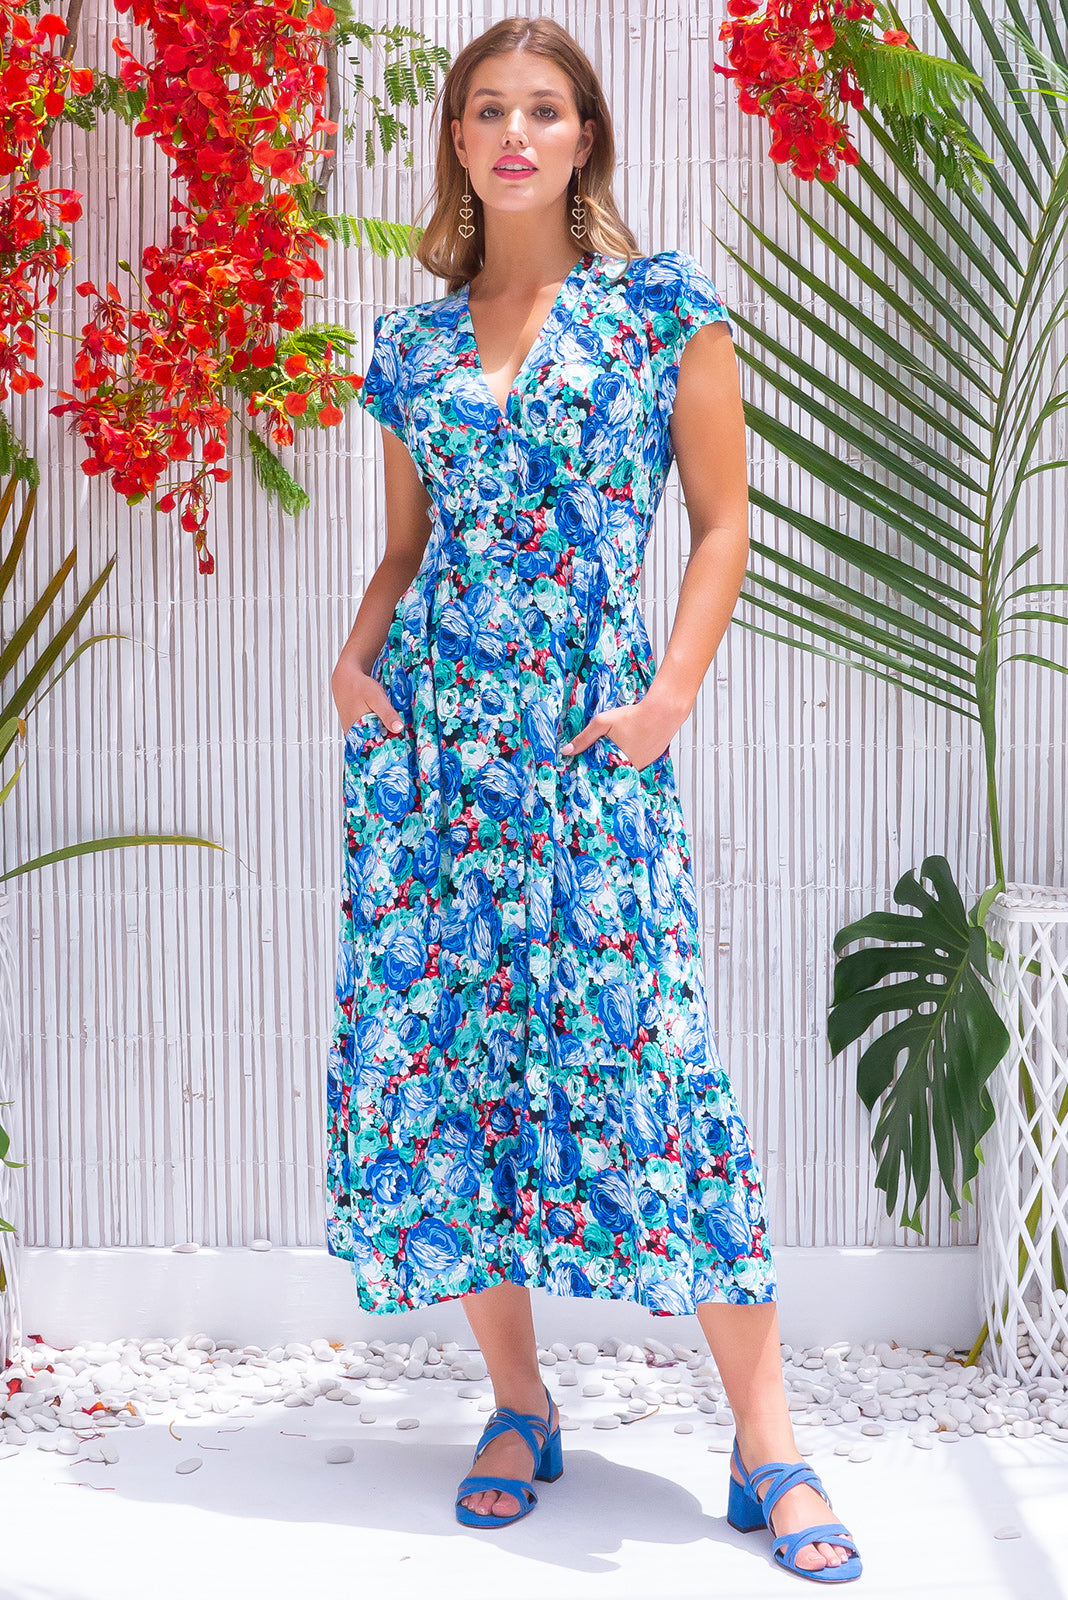 Jude Sunday Best Blue Midi Dress retro vintage inspired green/blue floral print viscose fabric with button front, cap sleeves and side pockets.